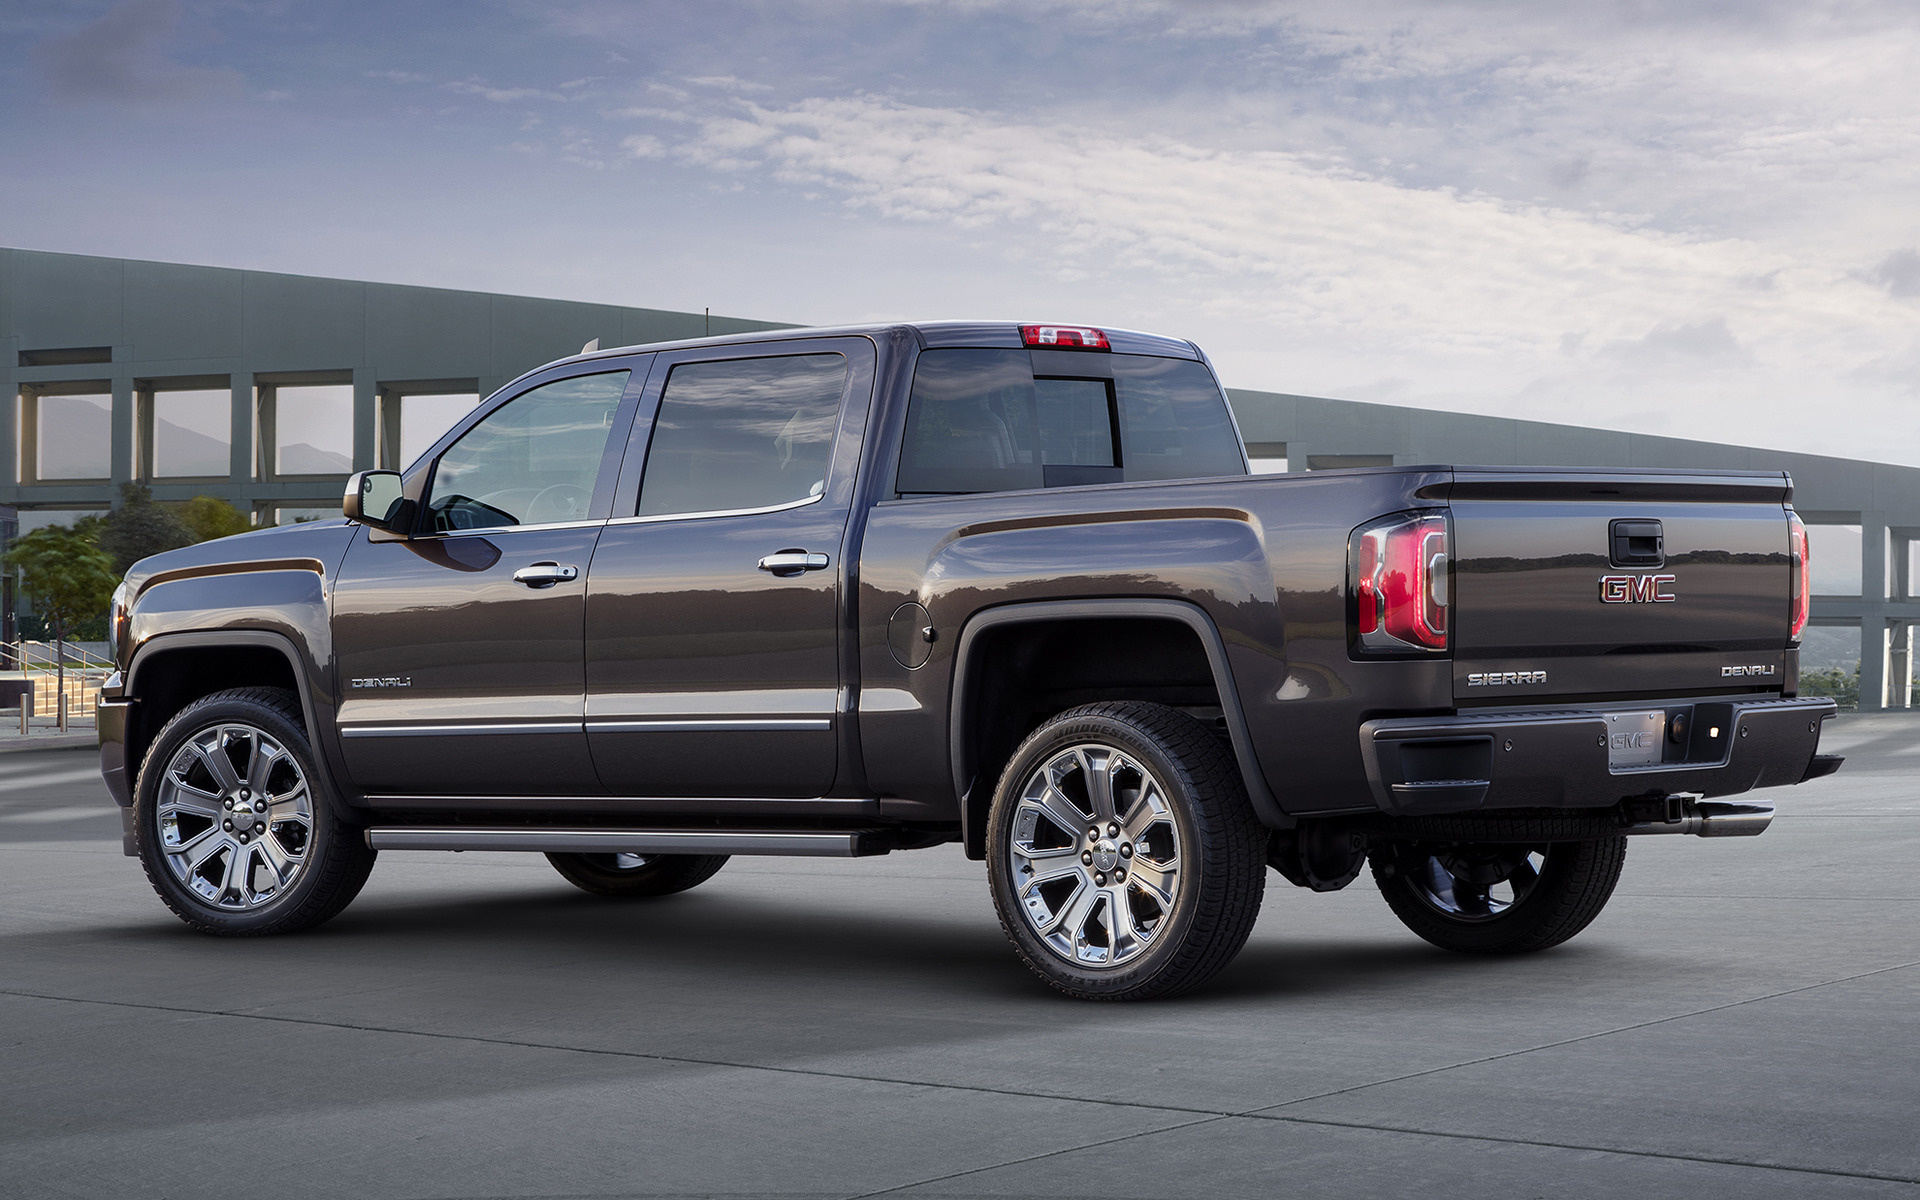 Gmc Sierra 1500 Denali Ultimate Crew Cab 2017 Wallpapers And Hd